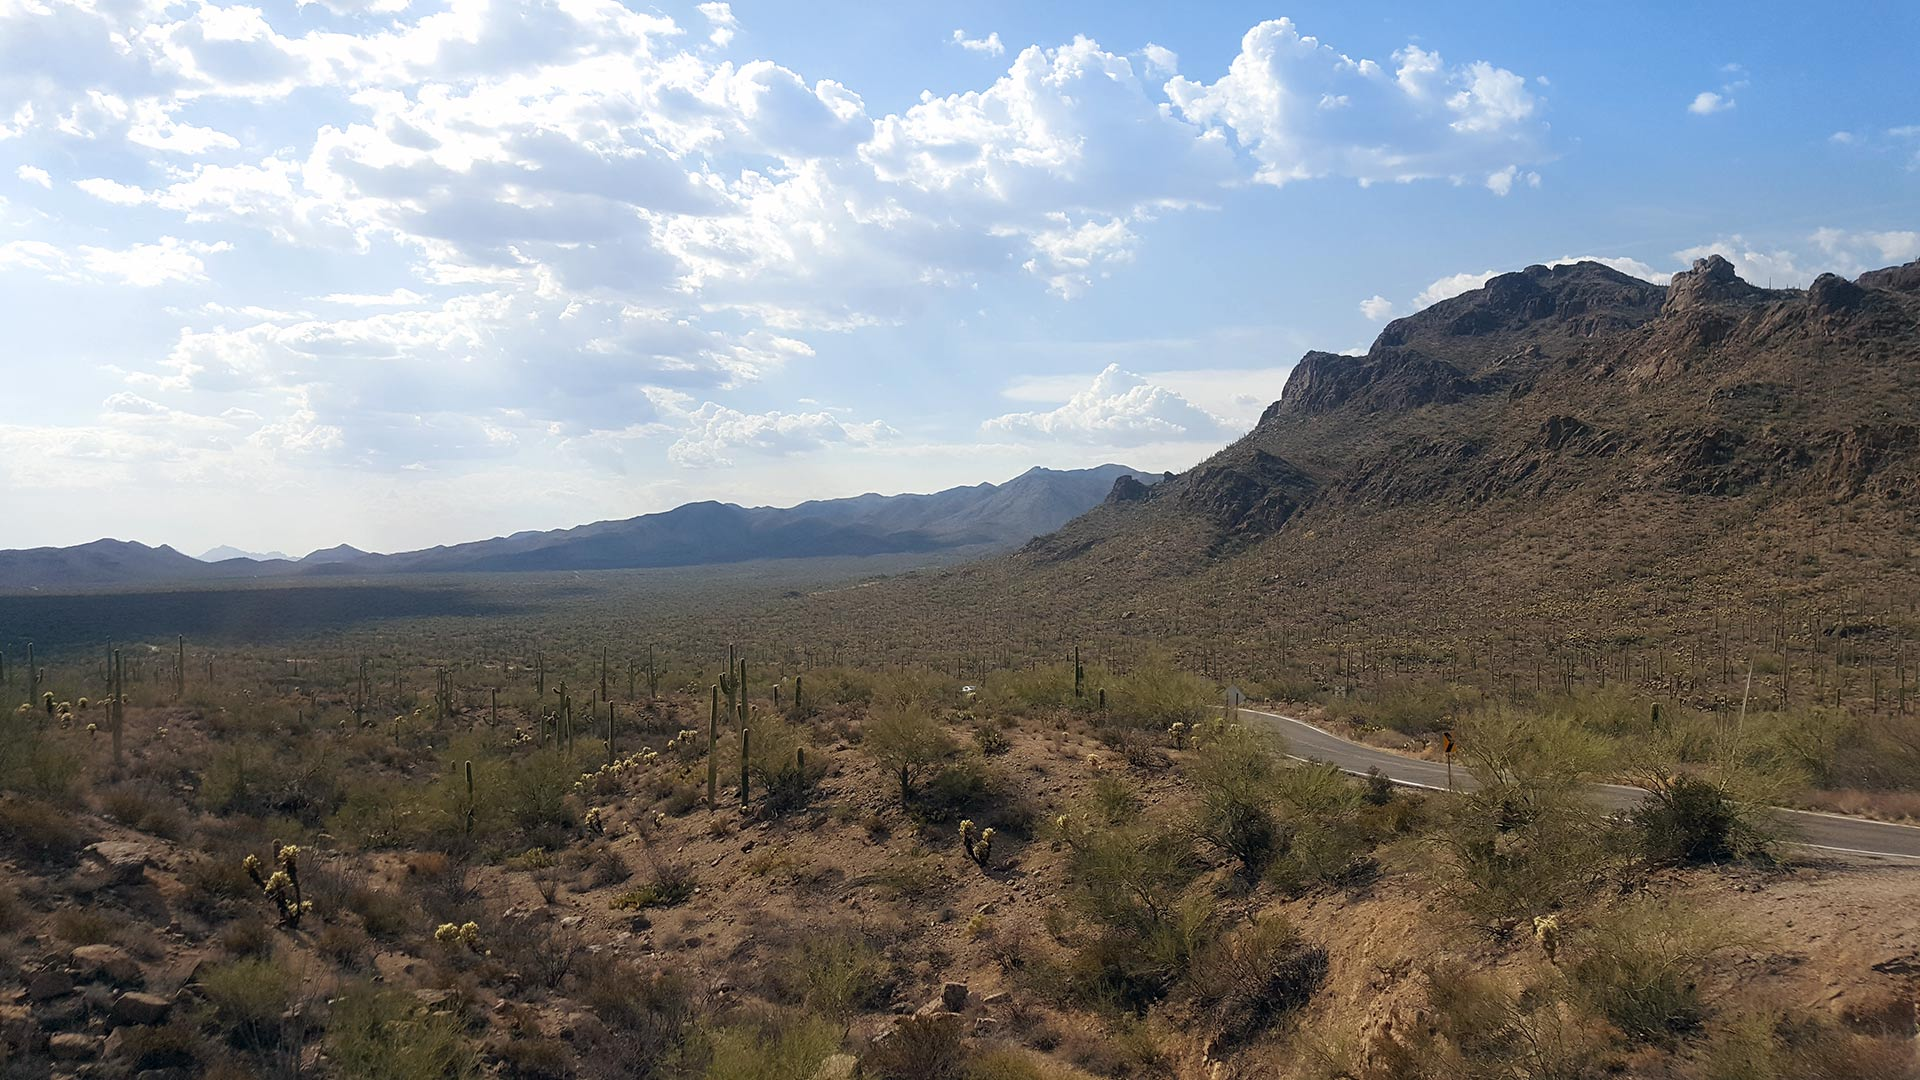 Looking west from Gates Pass towards Saguaro National Park West.